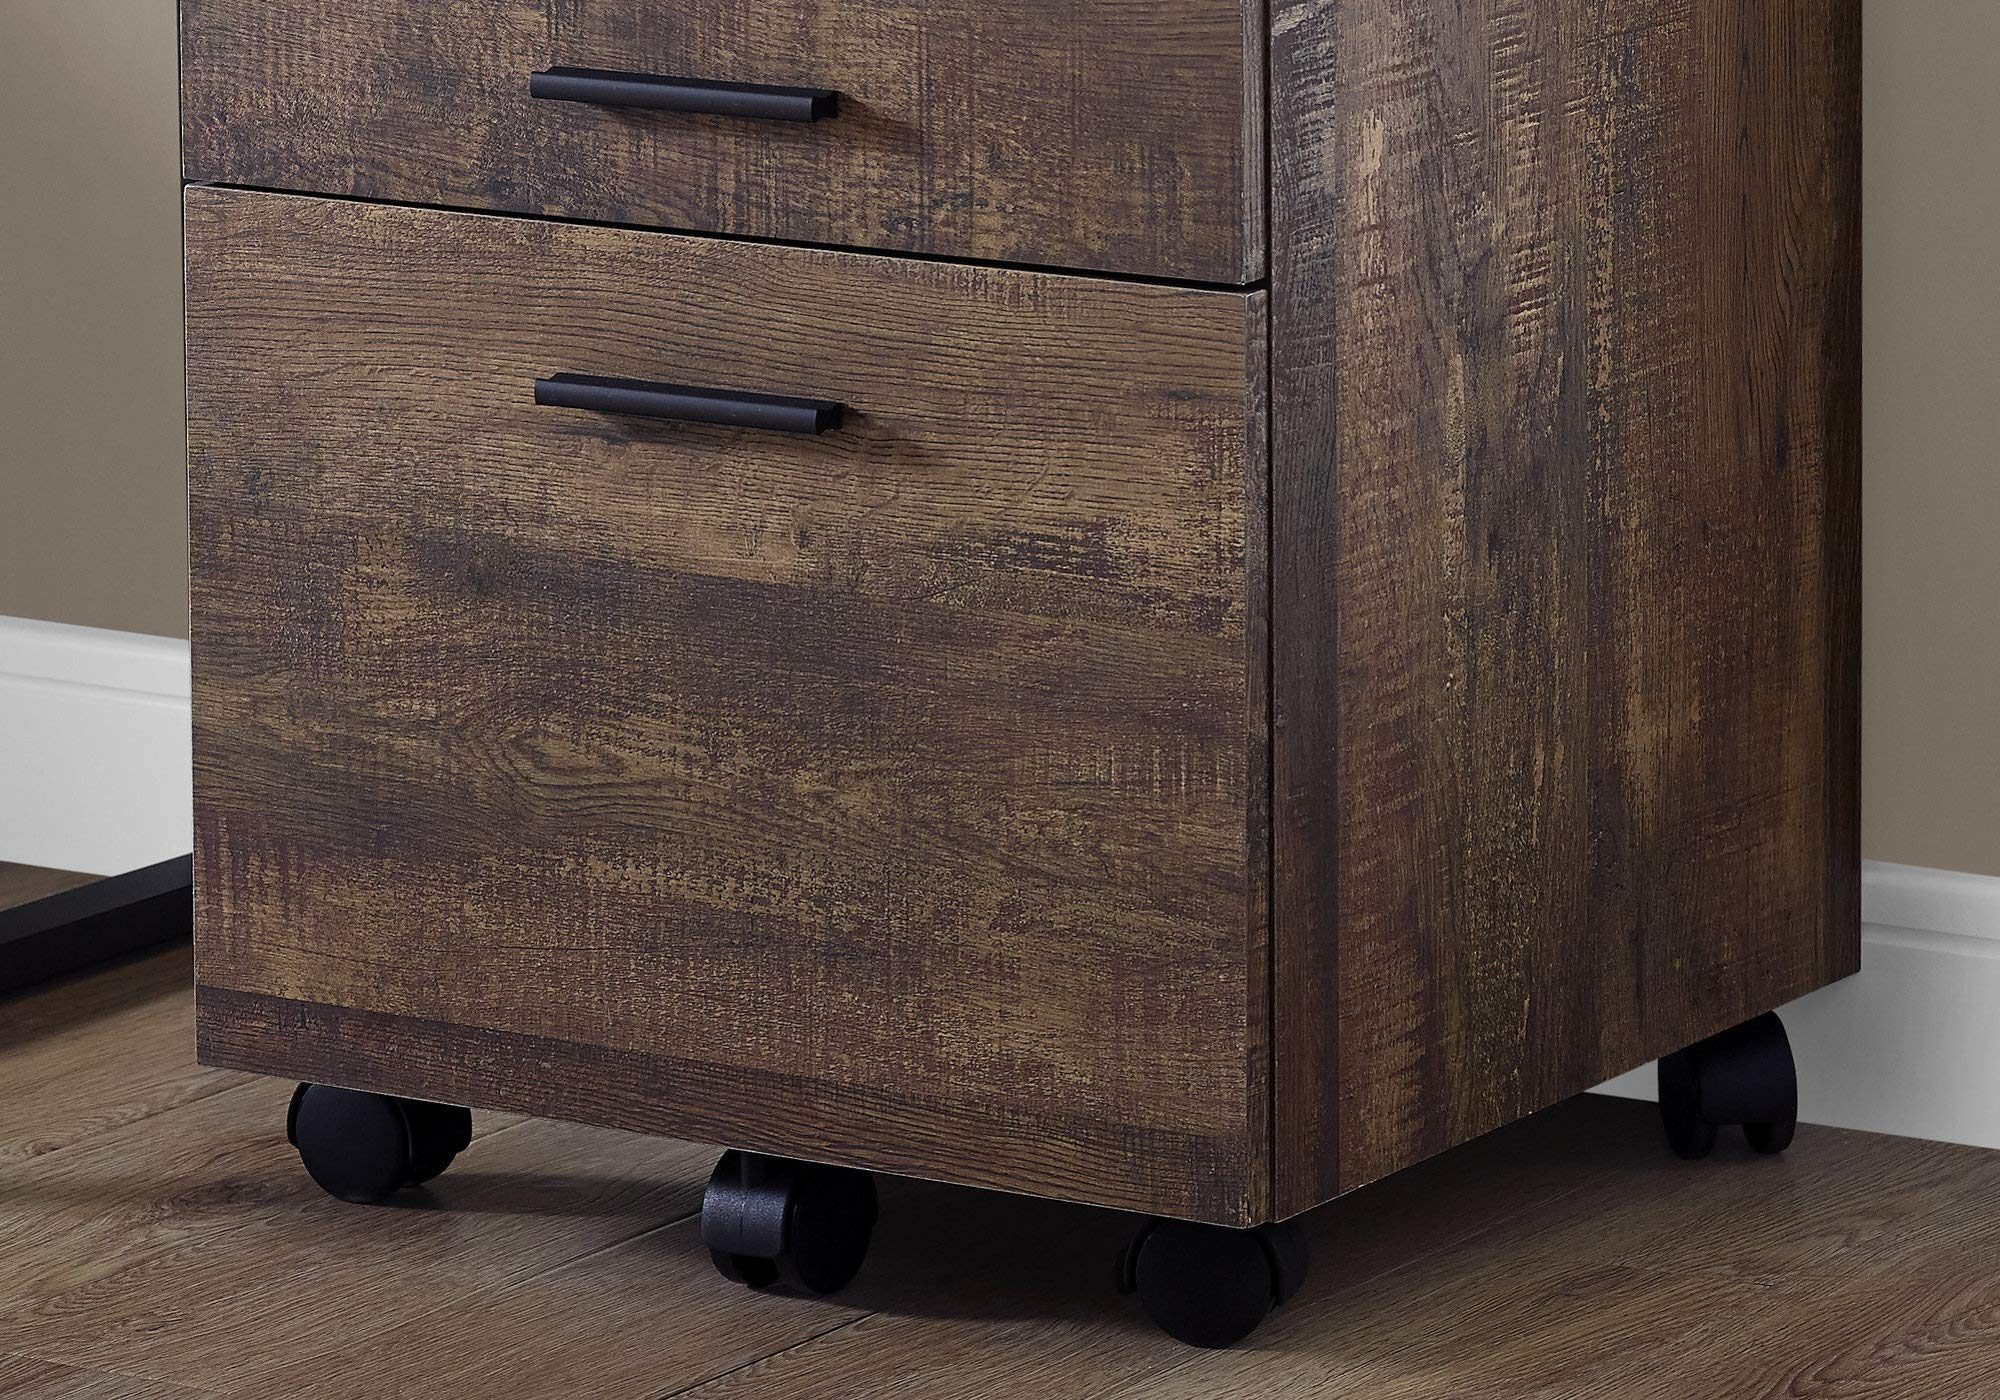 Monarch Specialties I I 7400 Filing Cabinet, Brown by Monarch Specialties (Image #3)